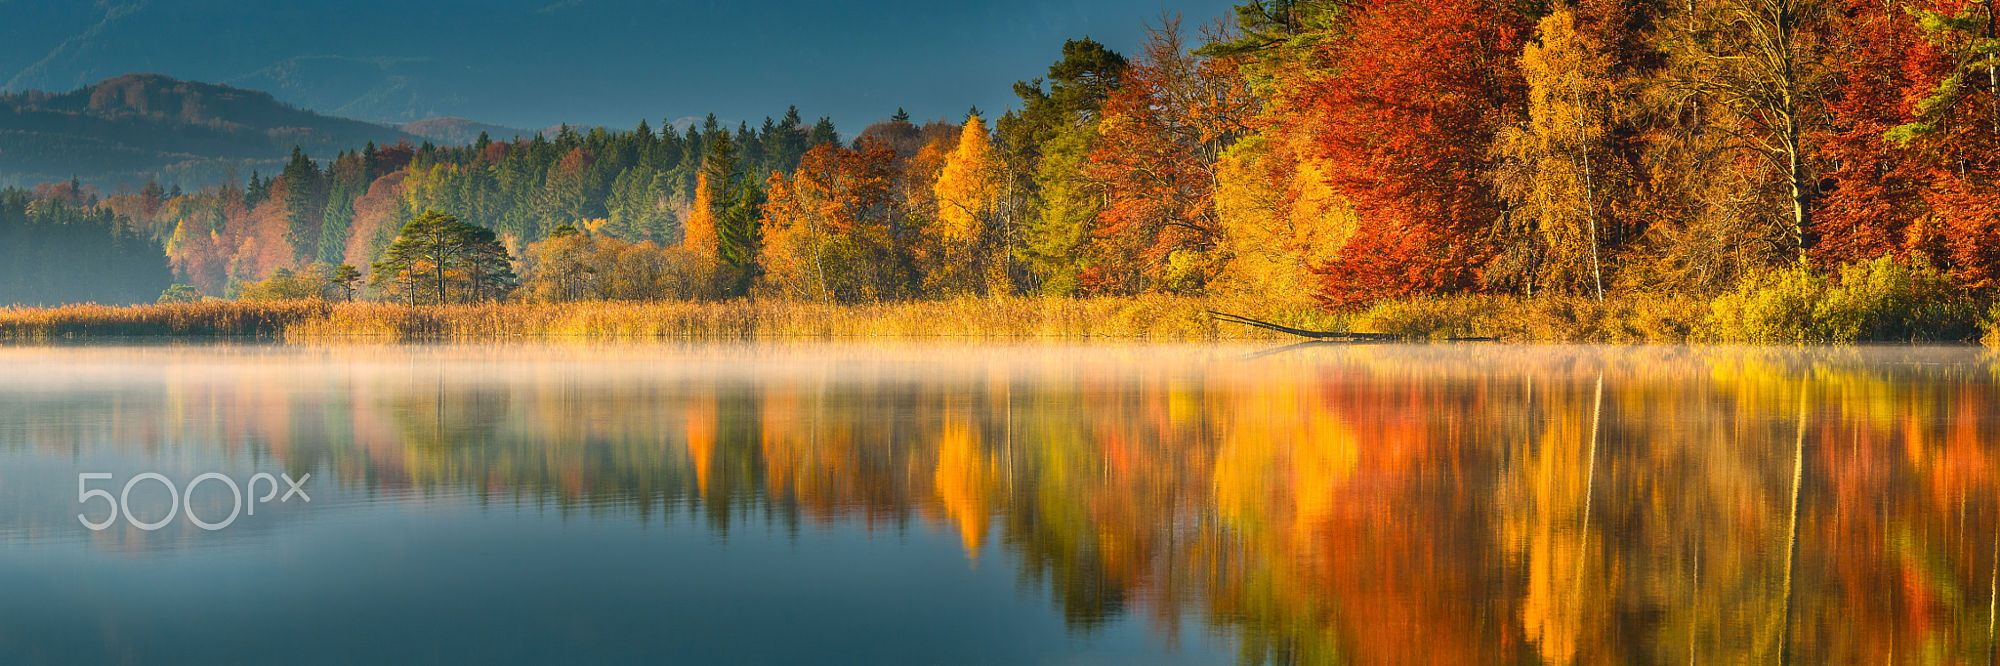 Autumn reflection by Denis Feiner on 500px